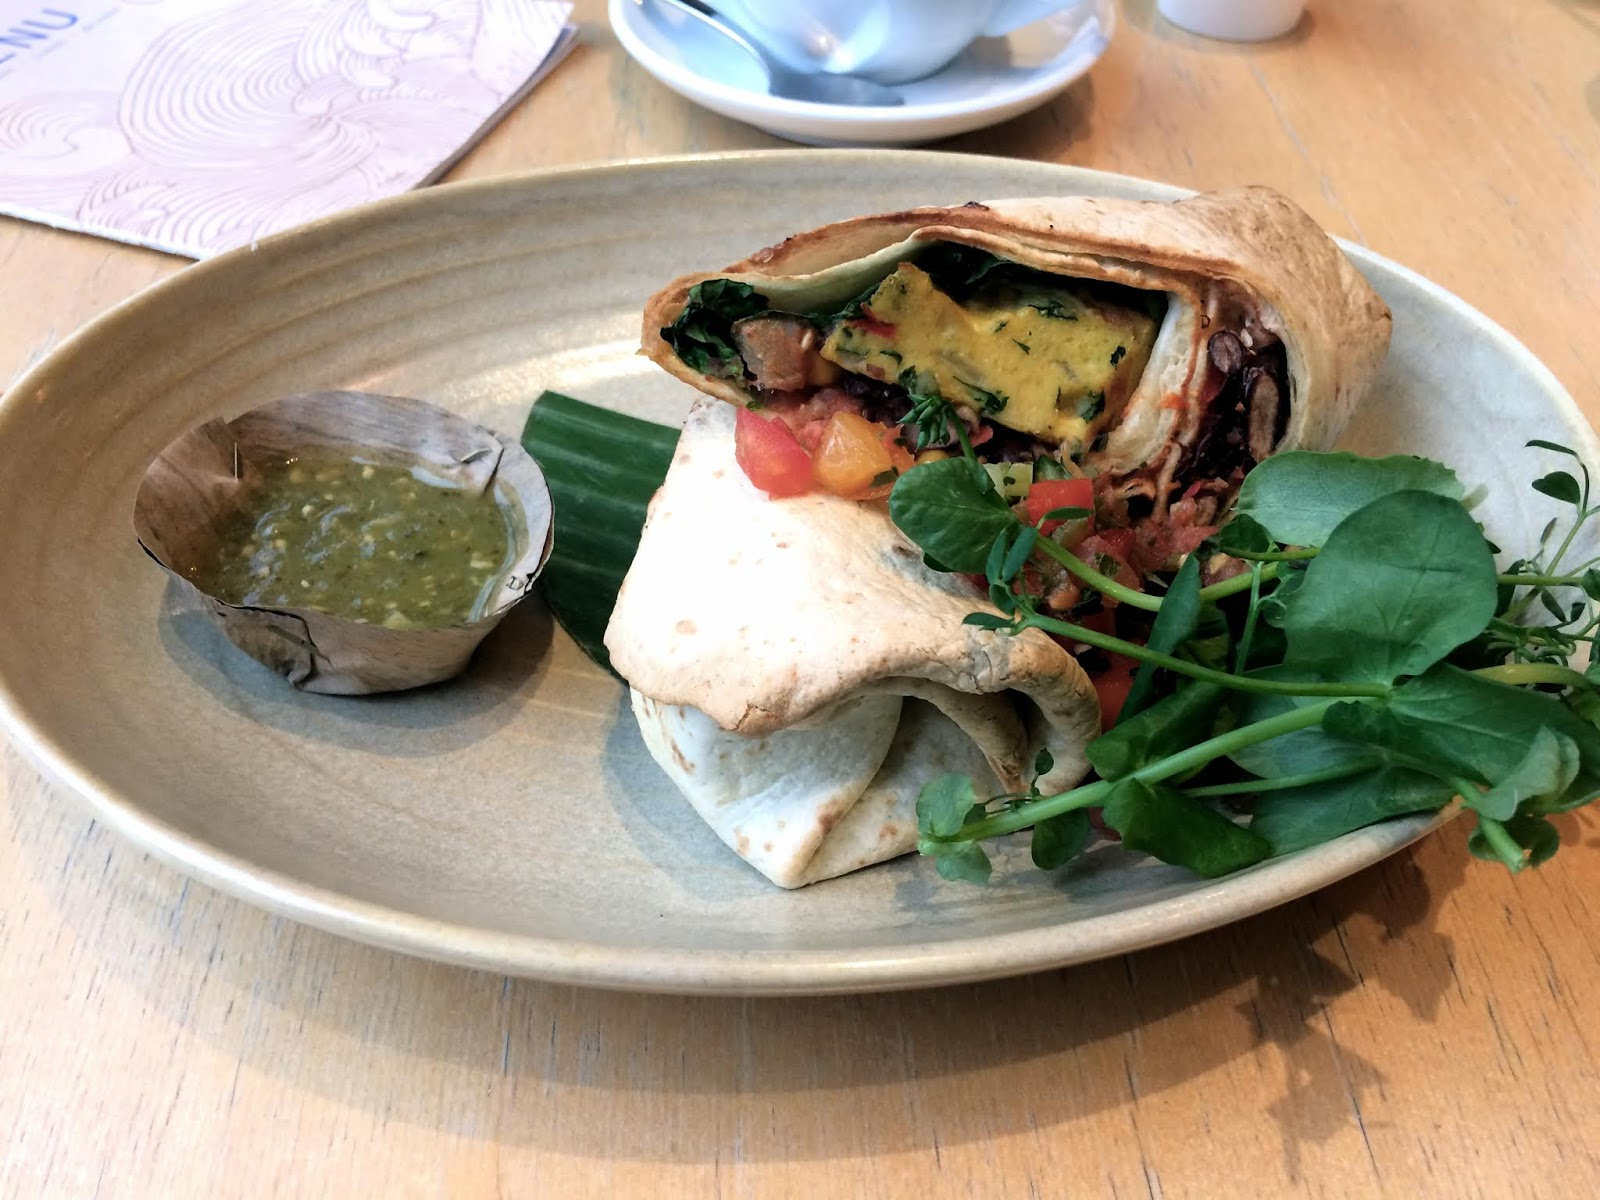 Close up of a breakfast burrito